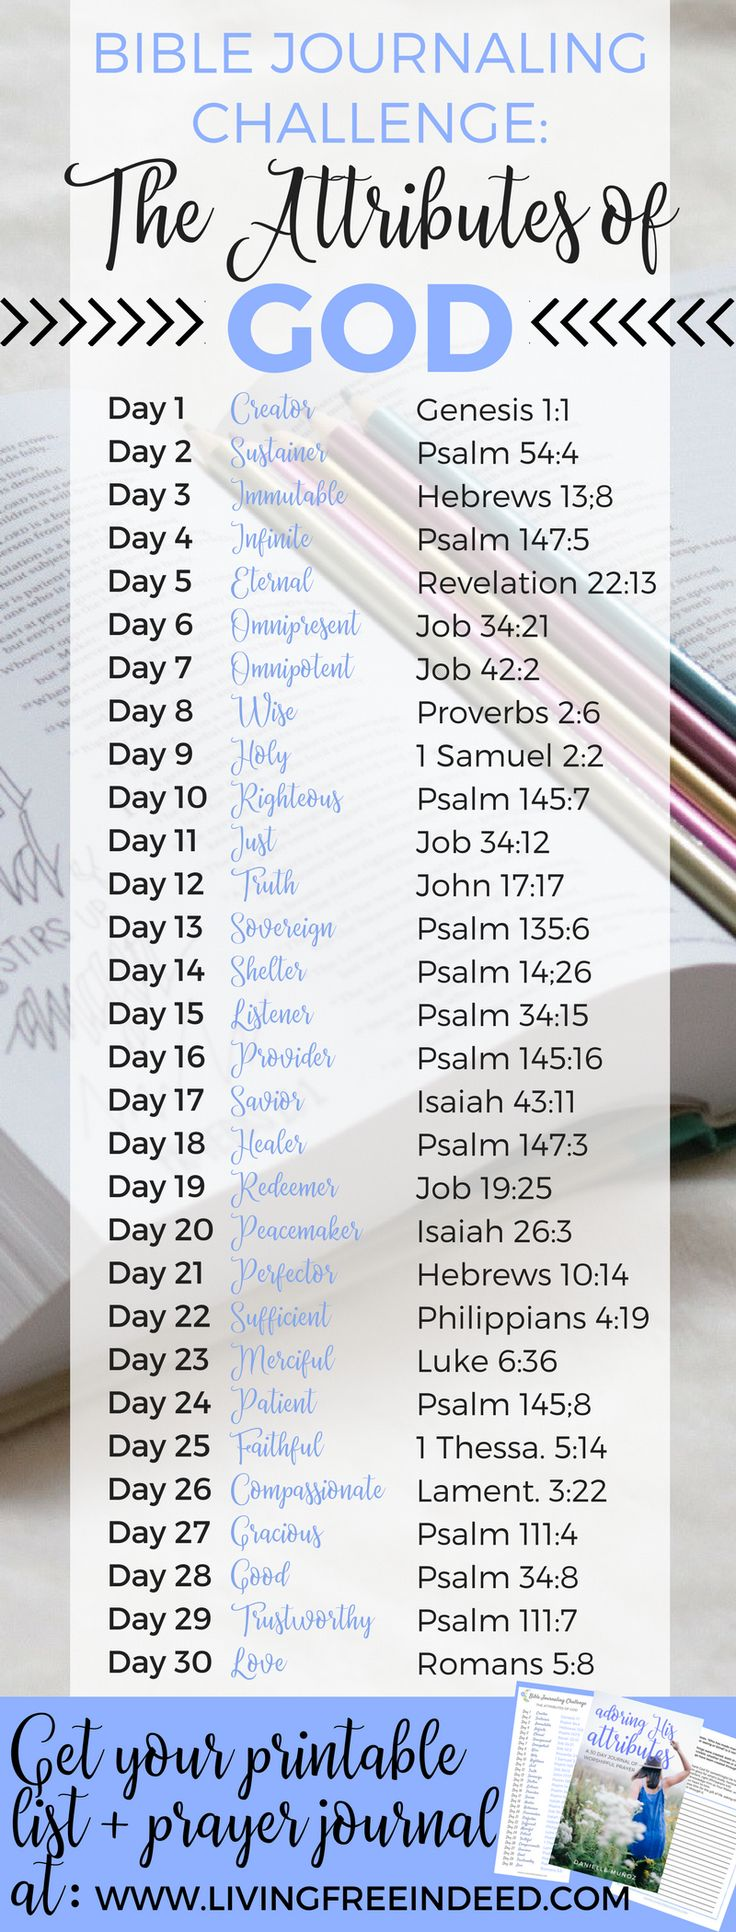 For the next 30 days join me in prayerfully praising God, simply for who He is. This is an opportunity to come to God's feet in worship of His marvelous character.   Attributes of God   Knowing God   Who is God   Jesus Christ   What Is God Like   Bible Journaling Plans   Scripture Reading Plans   Bible Verses About God